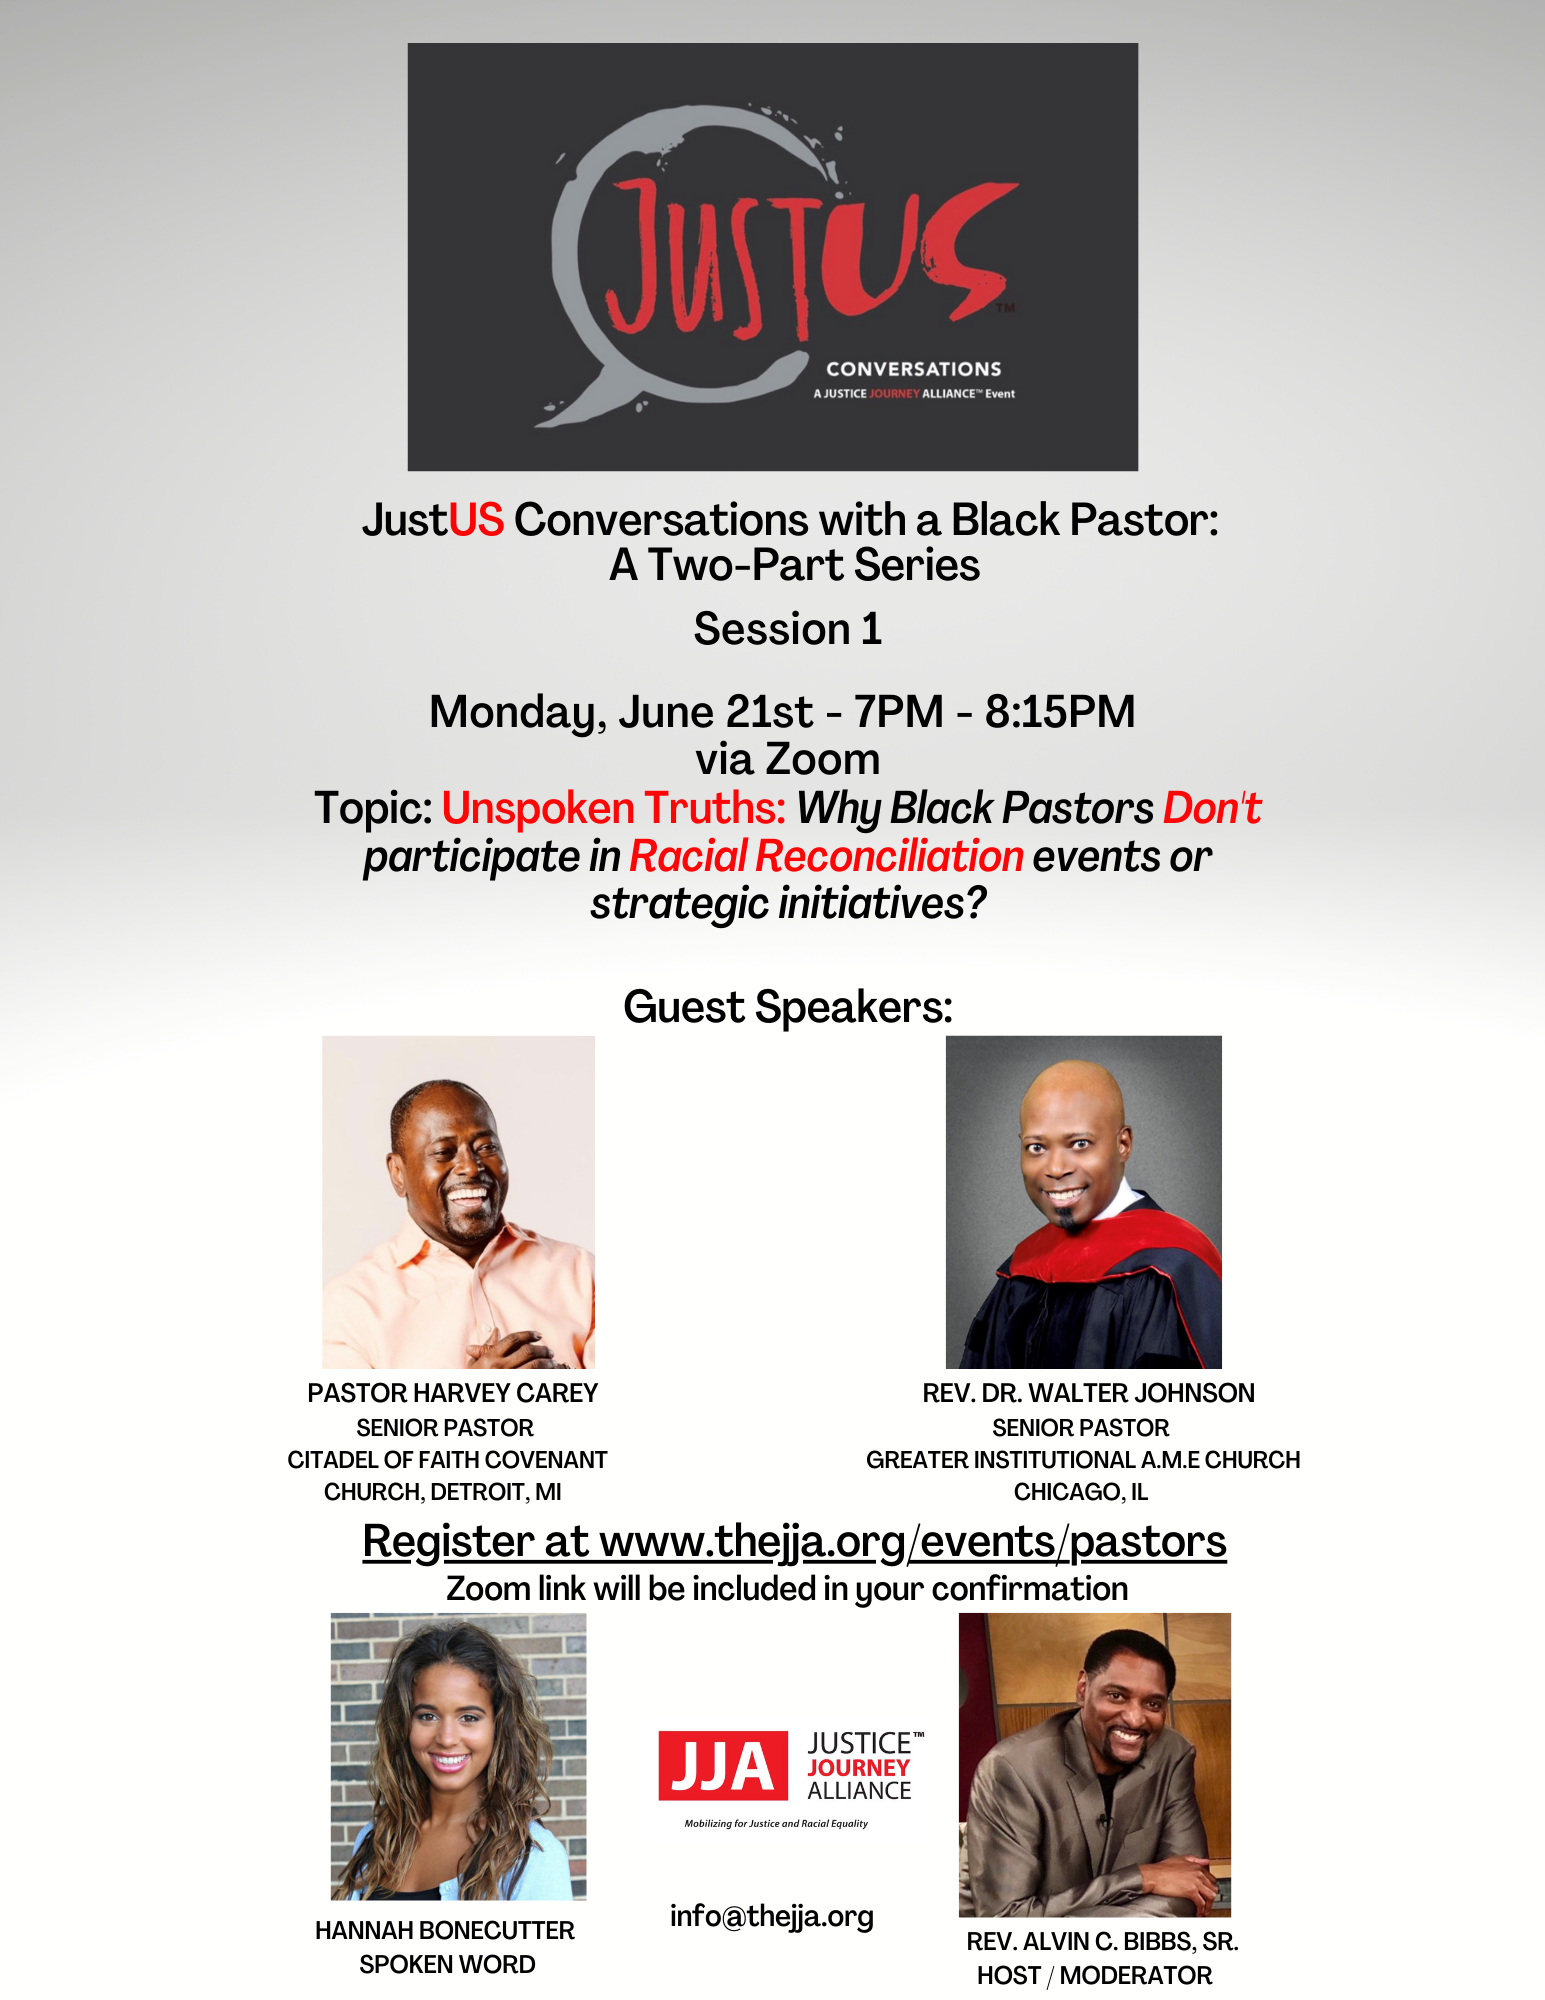 JustUS Conversations with a Black Pastor: A Two-Part Series | Session 1